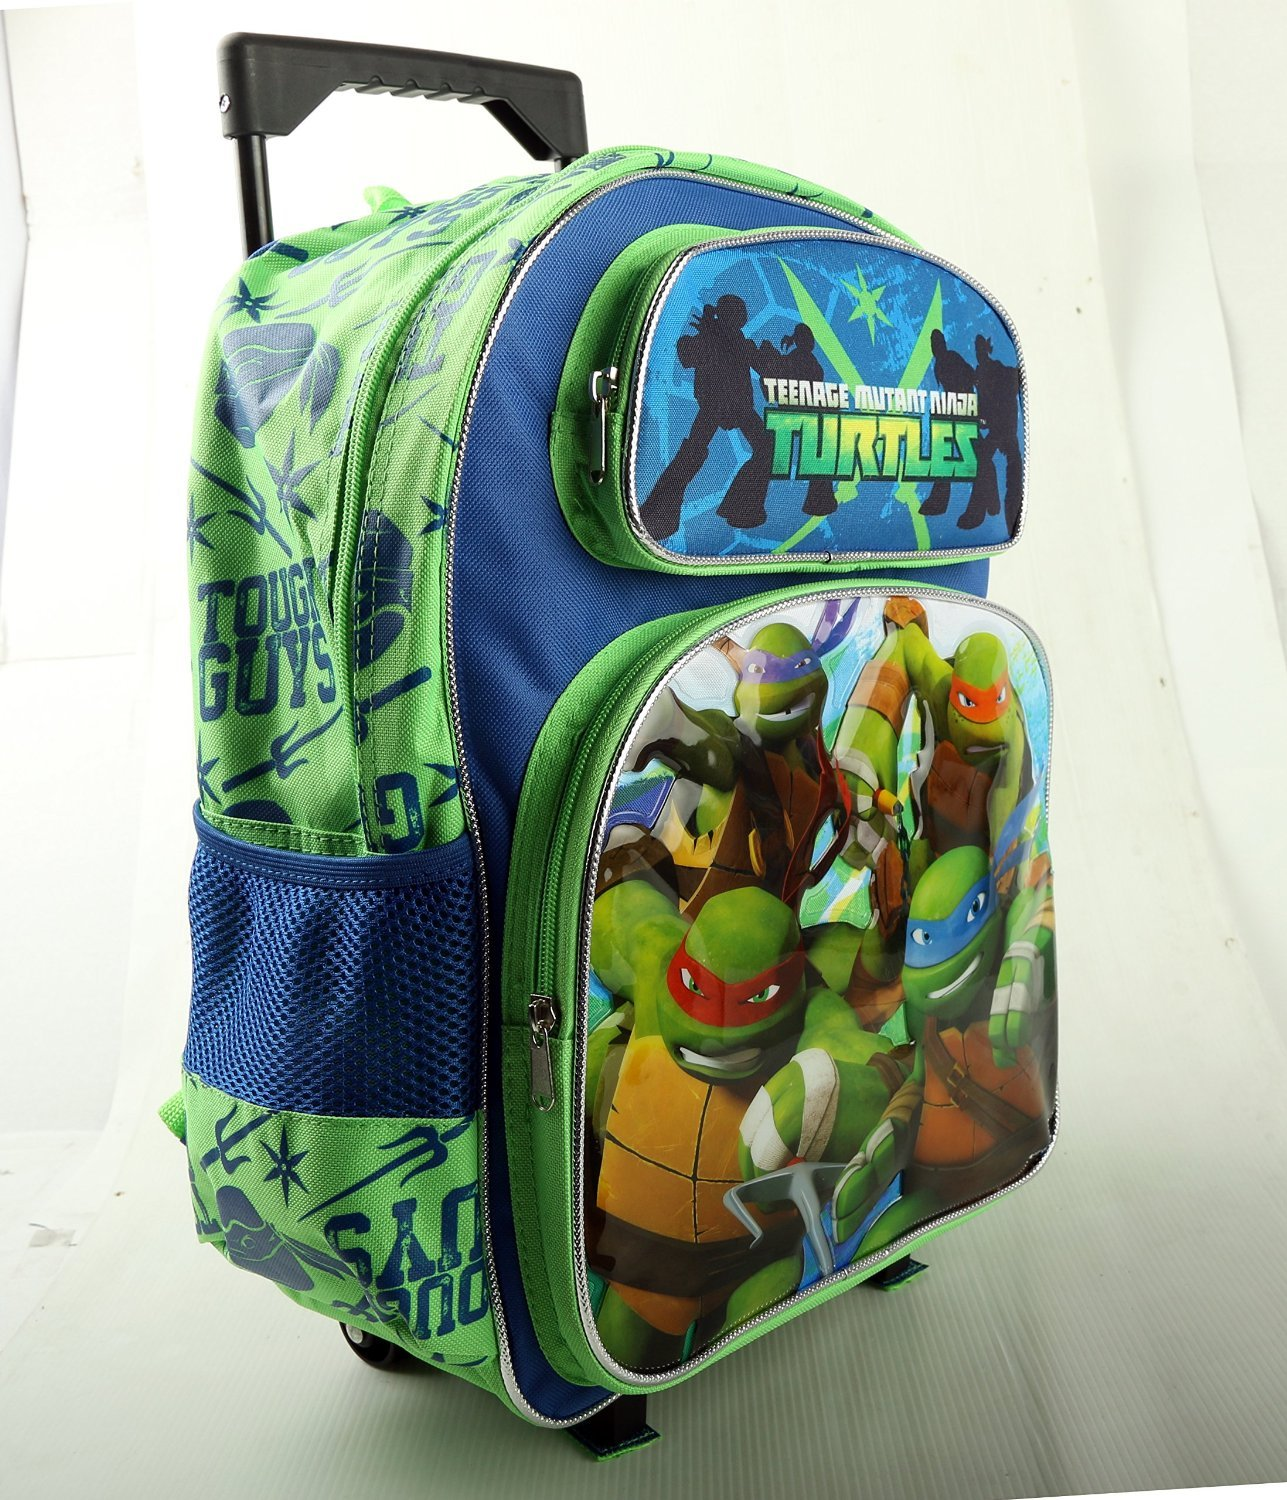 2015 grand trolley cartable a roulettes tortue ninja sac a dos 40cm x 30 cm primaire amazonfr sports et loisirs - Cartable Tortue Ninja